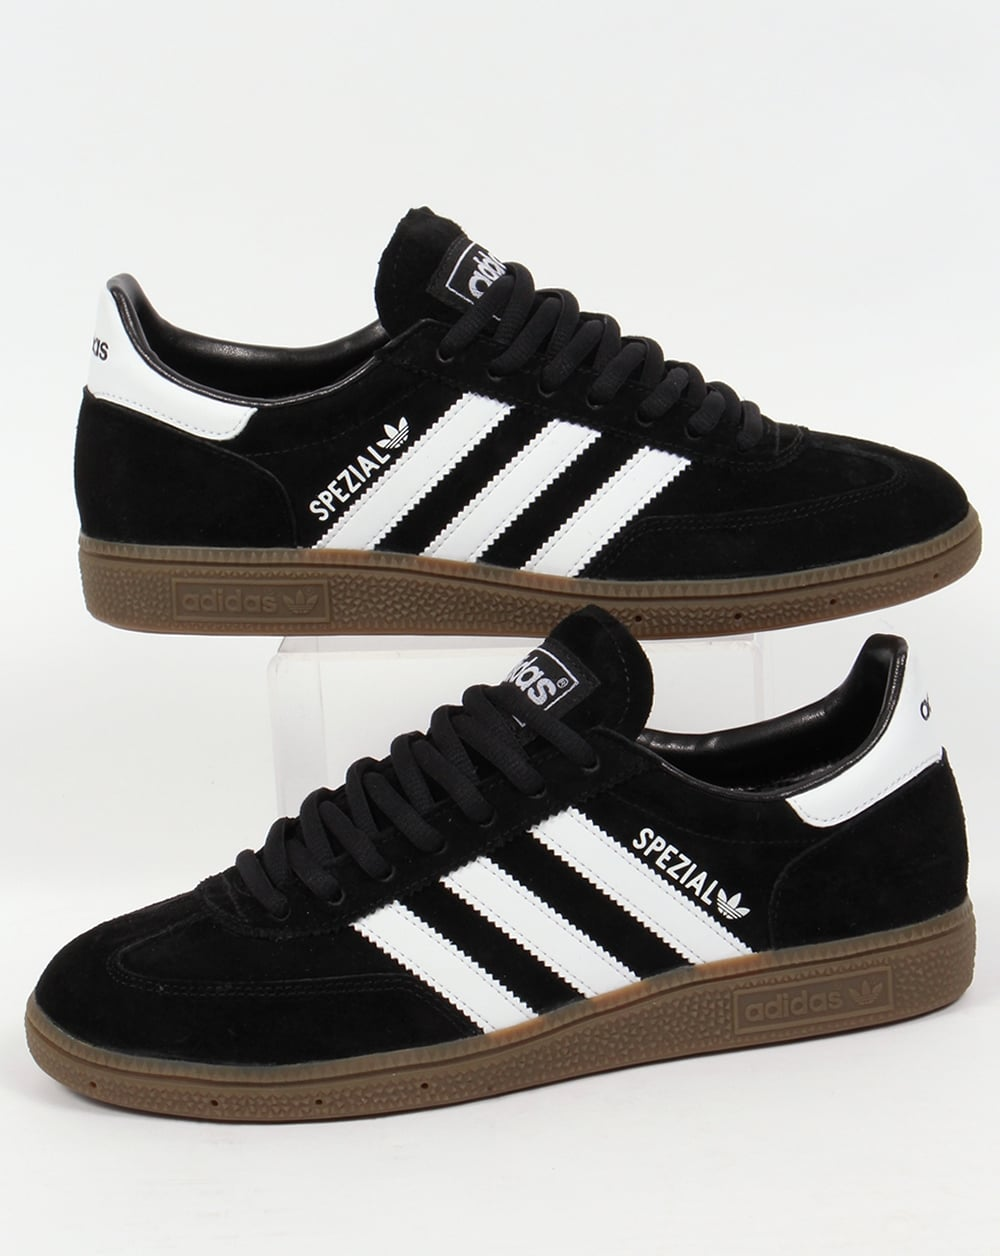 Buy Fashion Online Adidas Originals Handball Spezial Trainers (Black) N99z2378